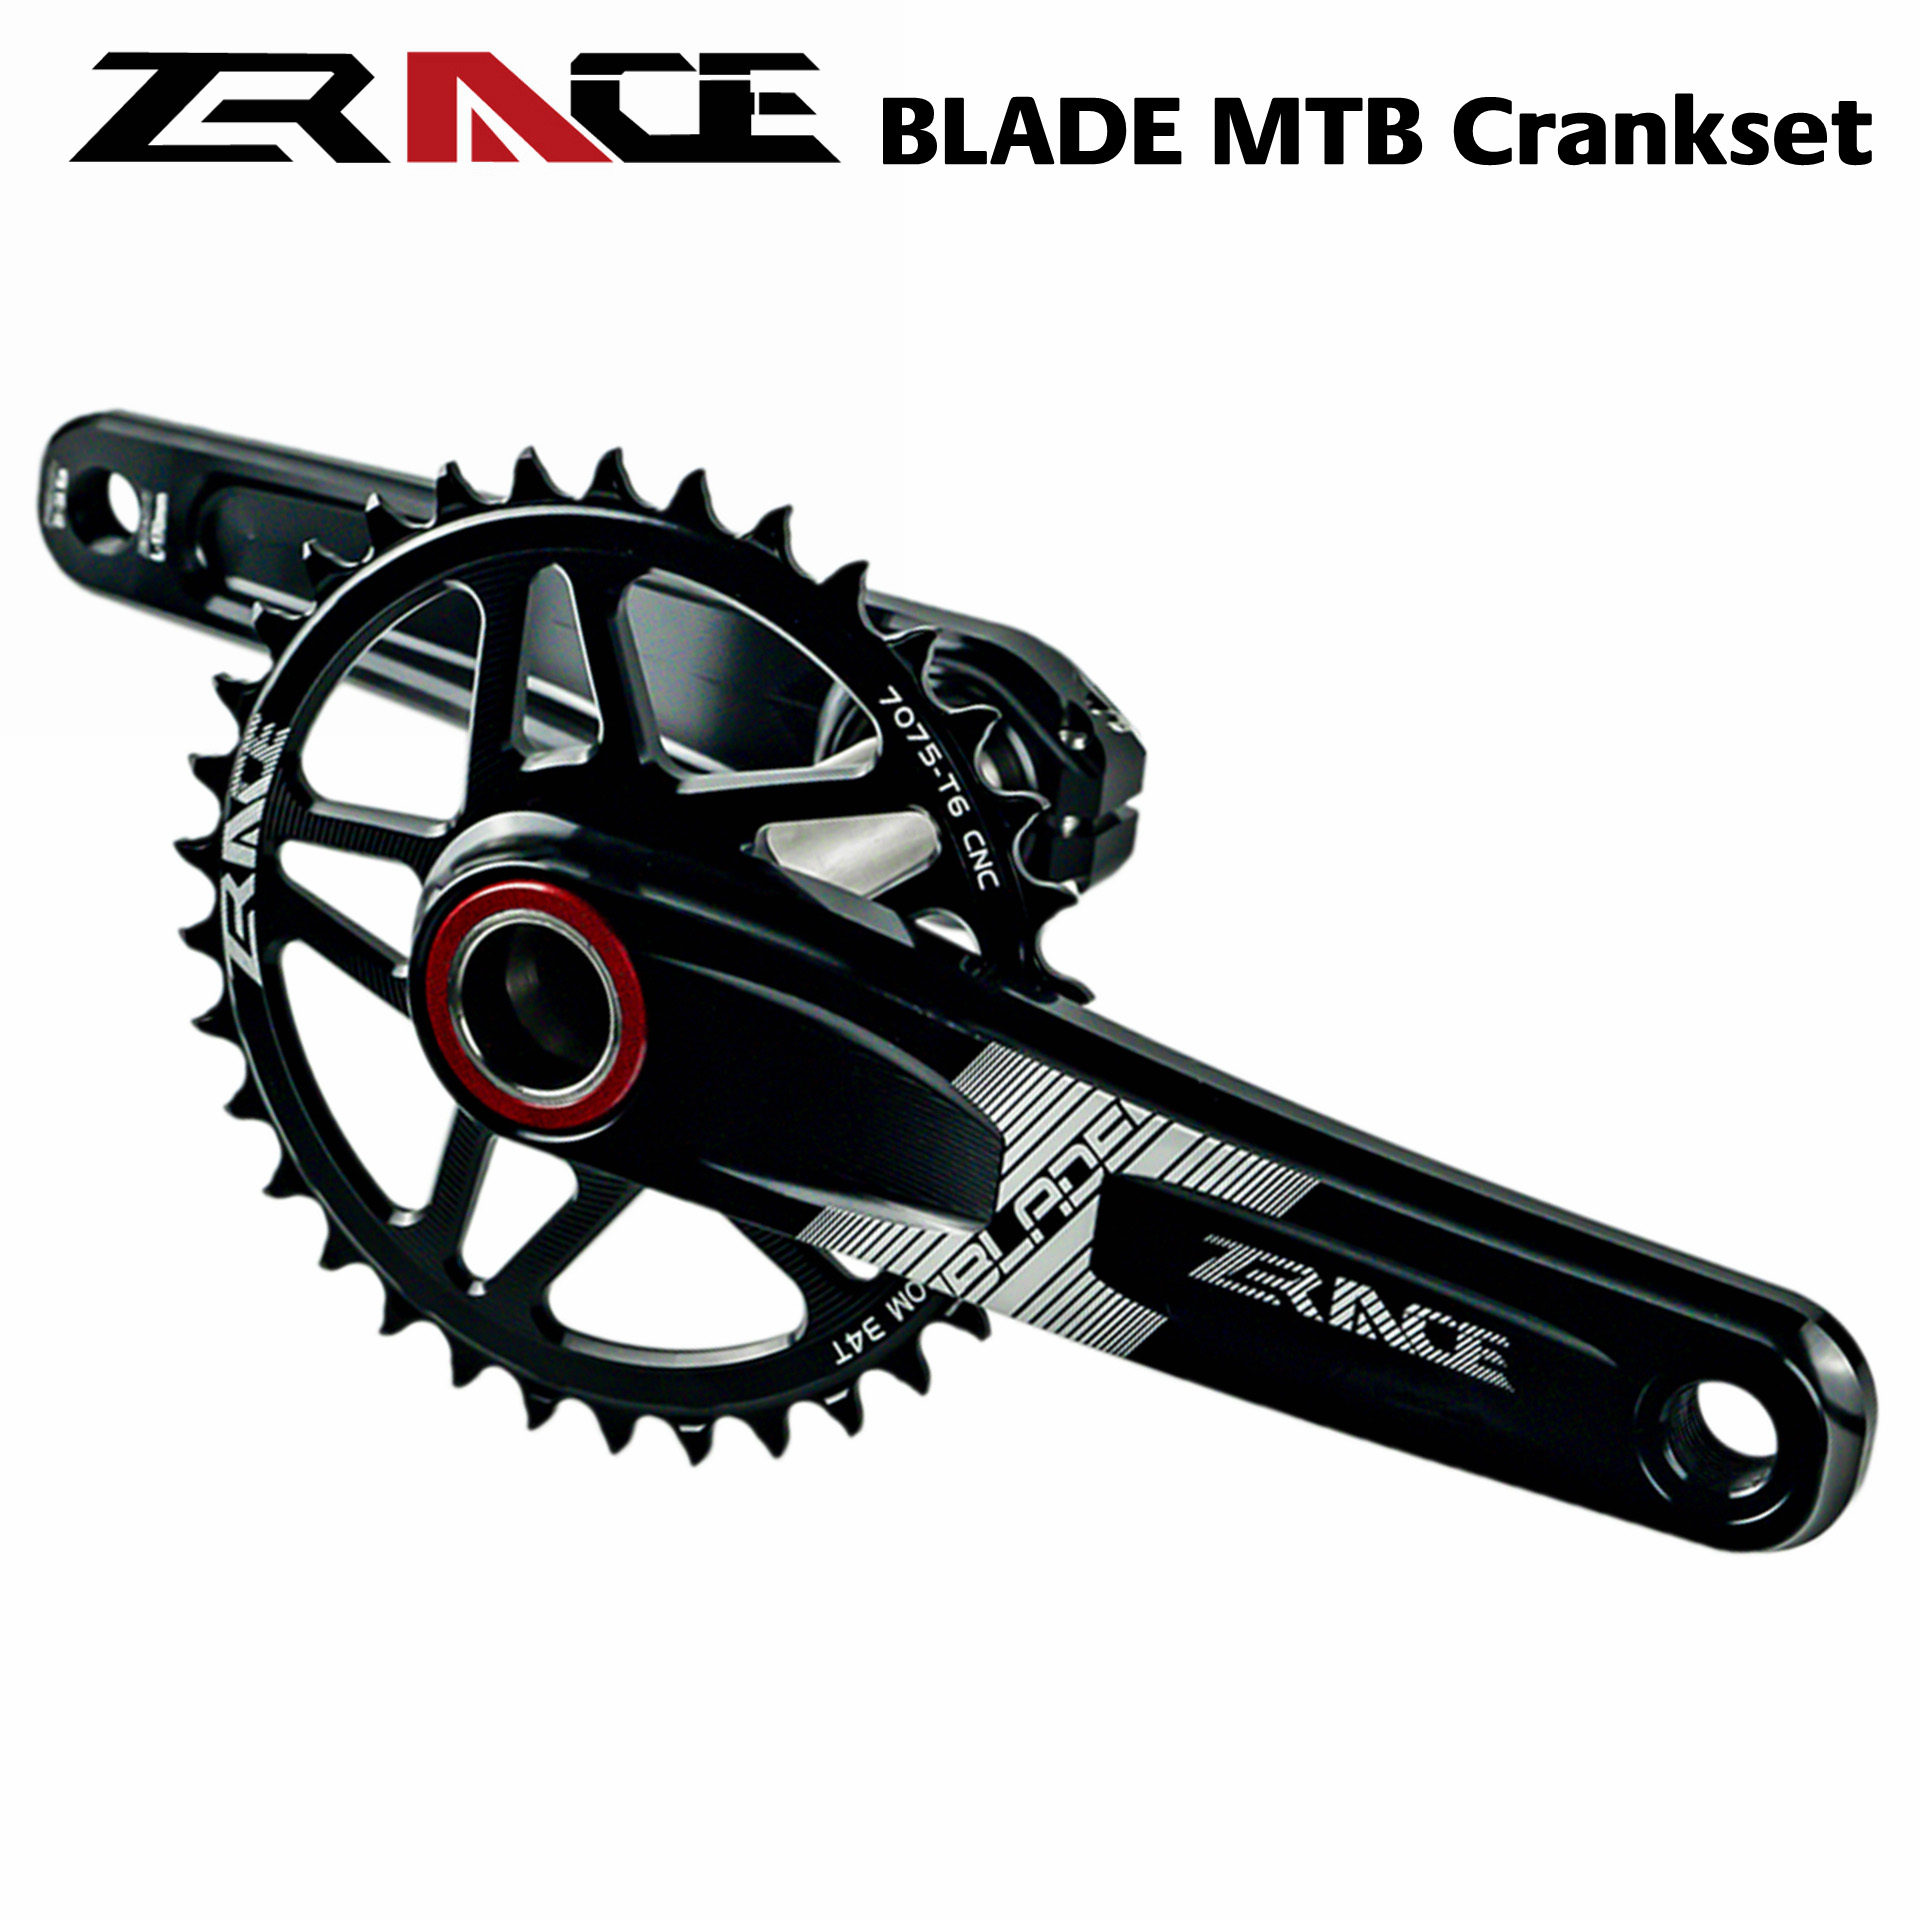 ZRACE HARDROCK BB68/73 1 x 10 11 12S Chain Crankset 170mm / 175mm 32T / 34T Chainset for SRAM EAGLE for Mountain Bicycles image